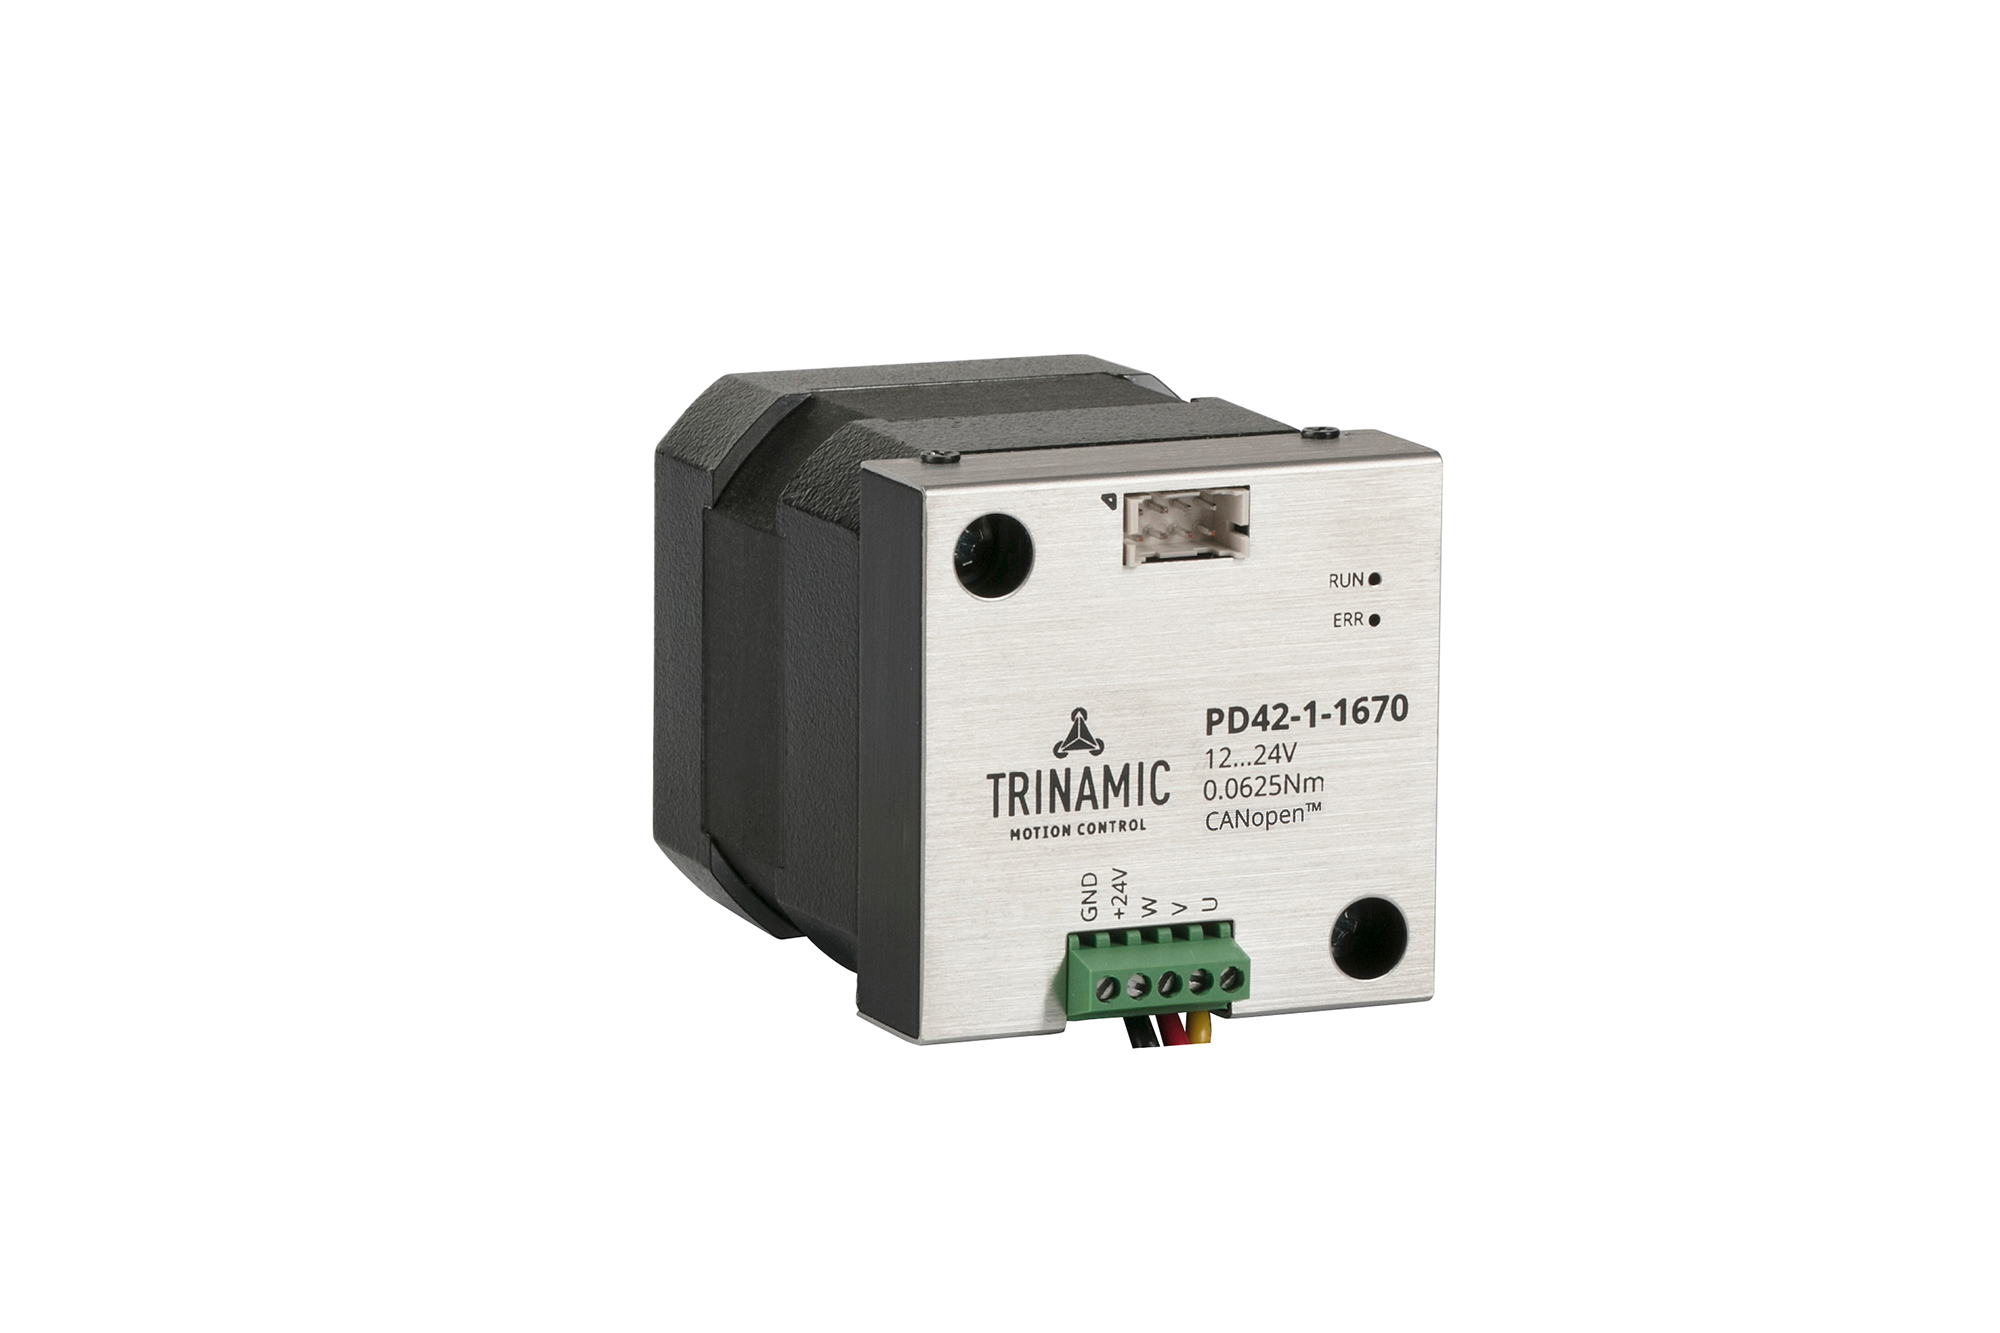 TRINAMIC Motion Control - PANdrive PD42-1-1670-CANopen